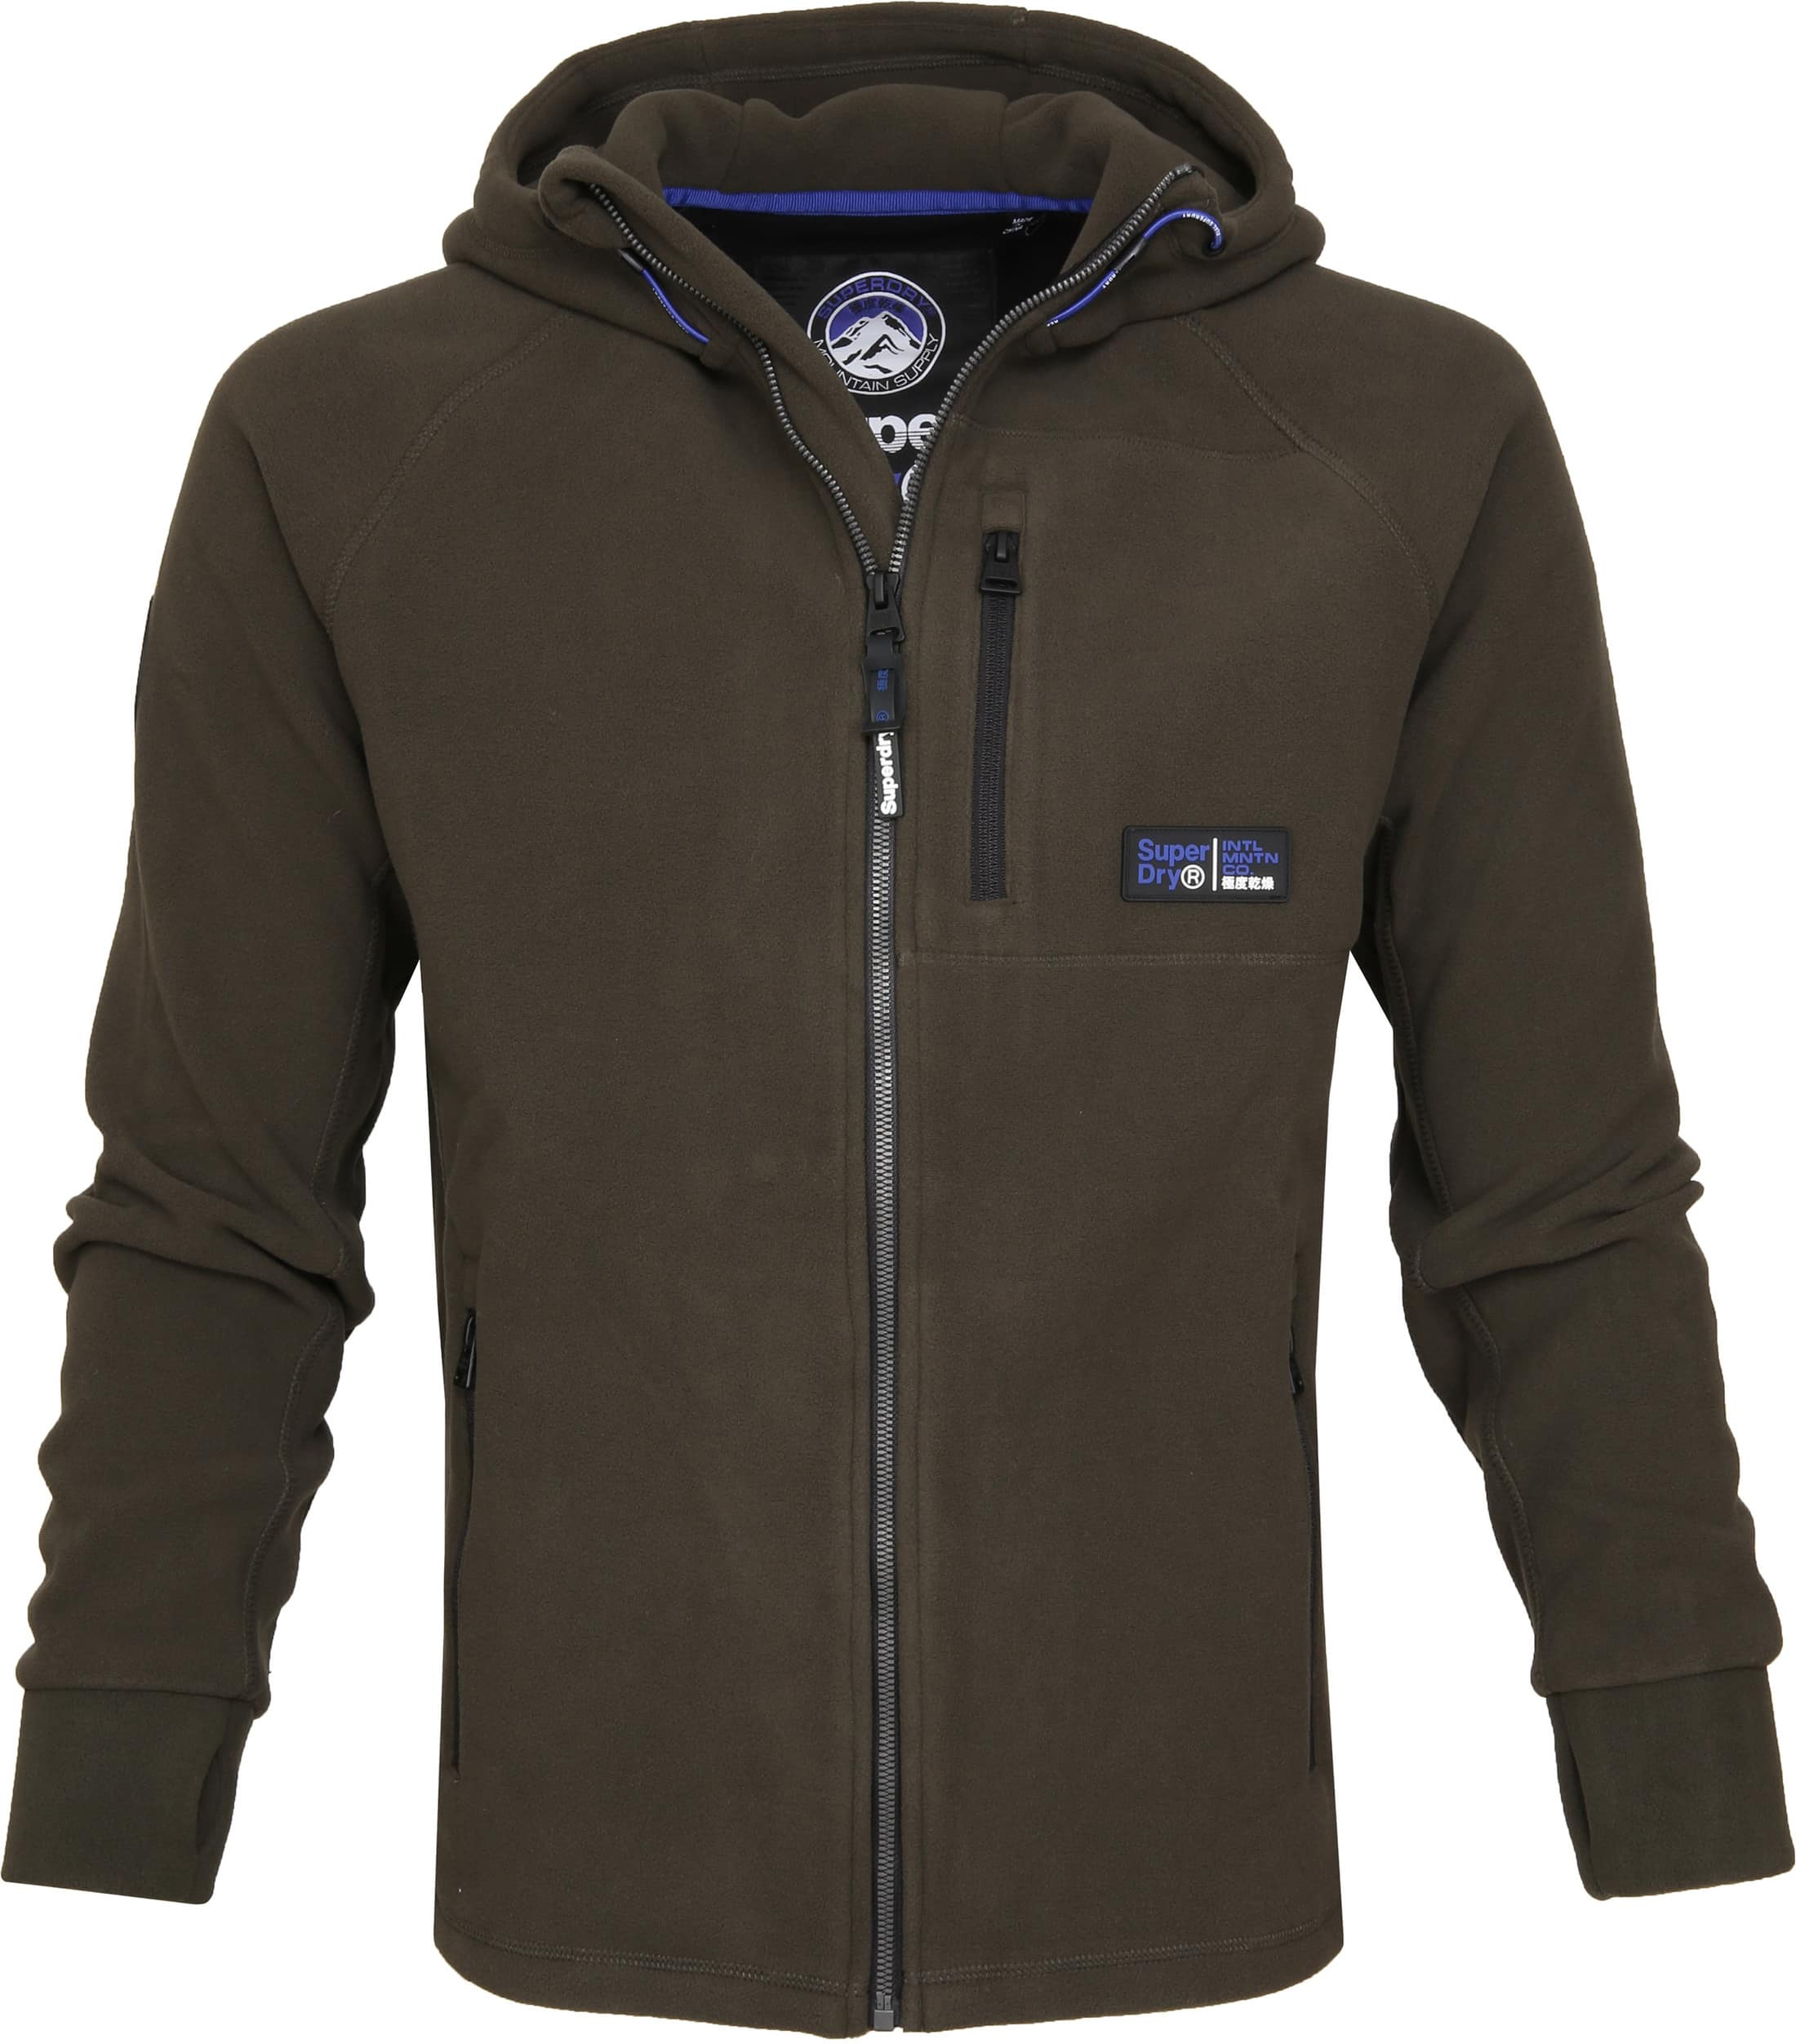 lowest price 6eaad b9462 Superdry Cardigan Polar Fleece Armee M2000029A- 18E online ...